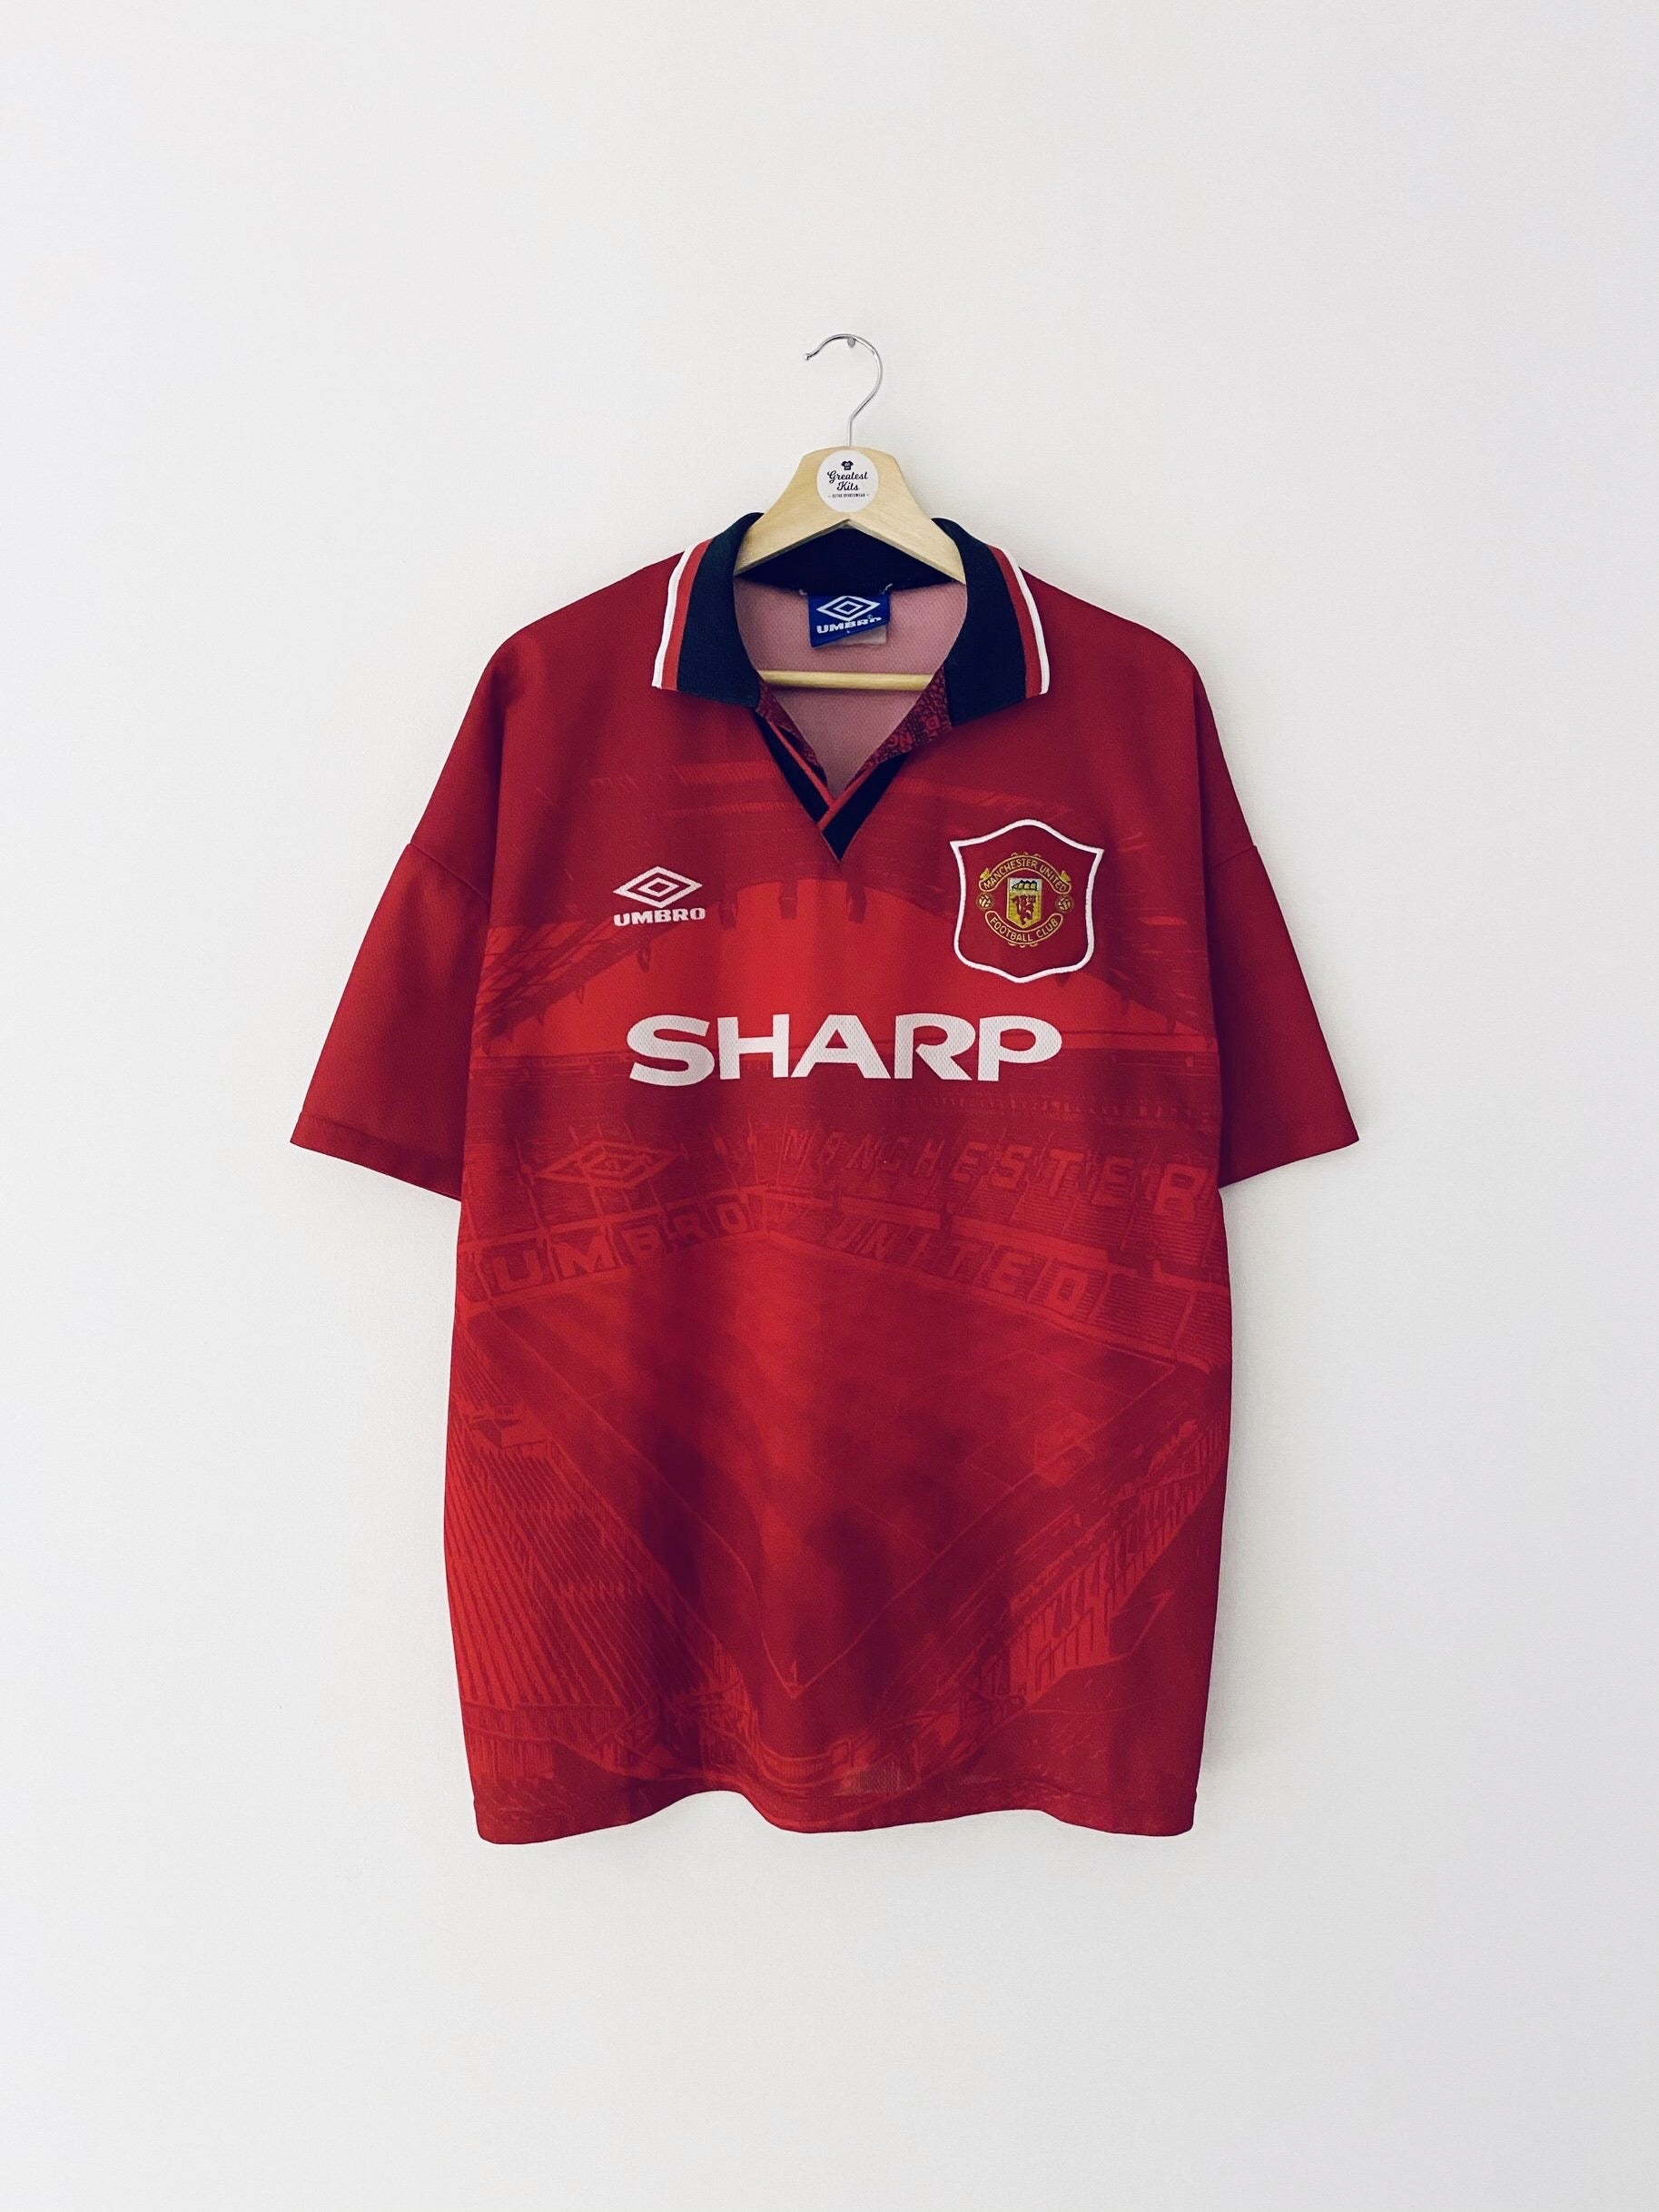 1994/96 Manchester United Home Shirt #11 (Giggs) (L) 8.5/10